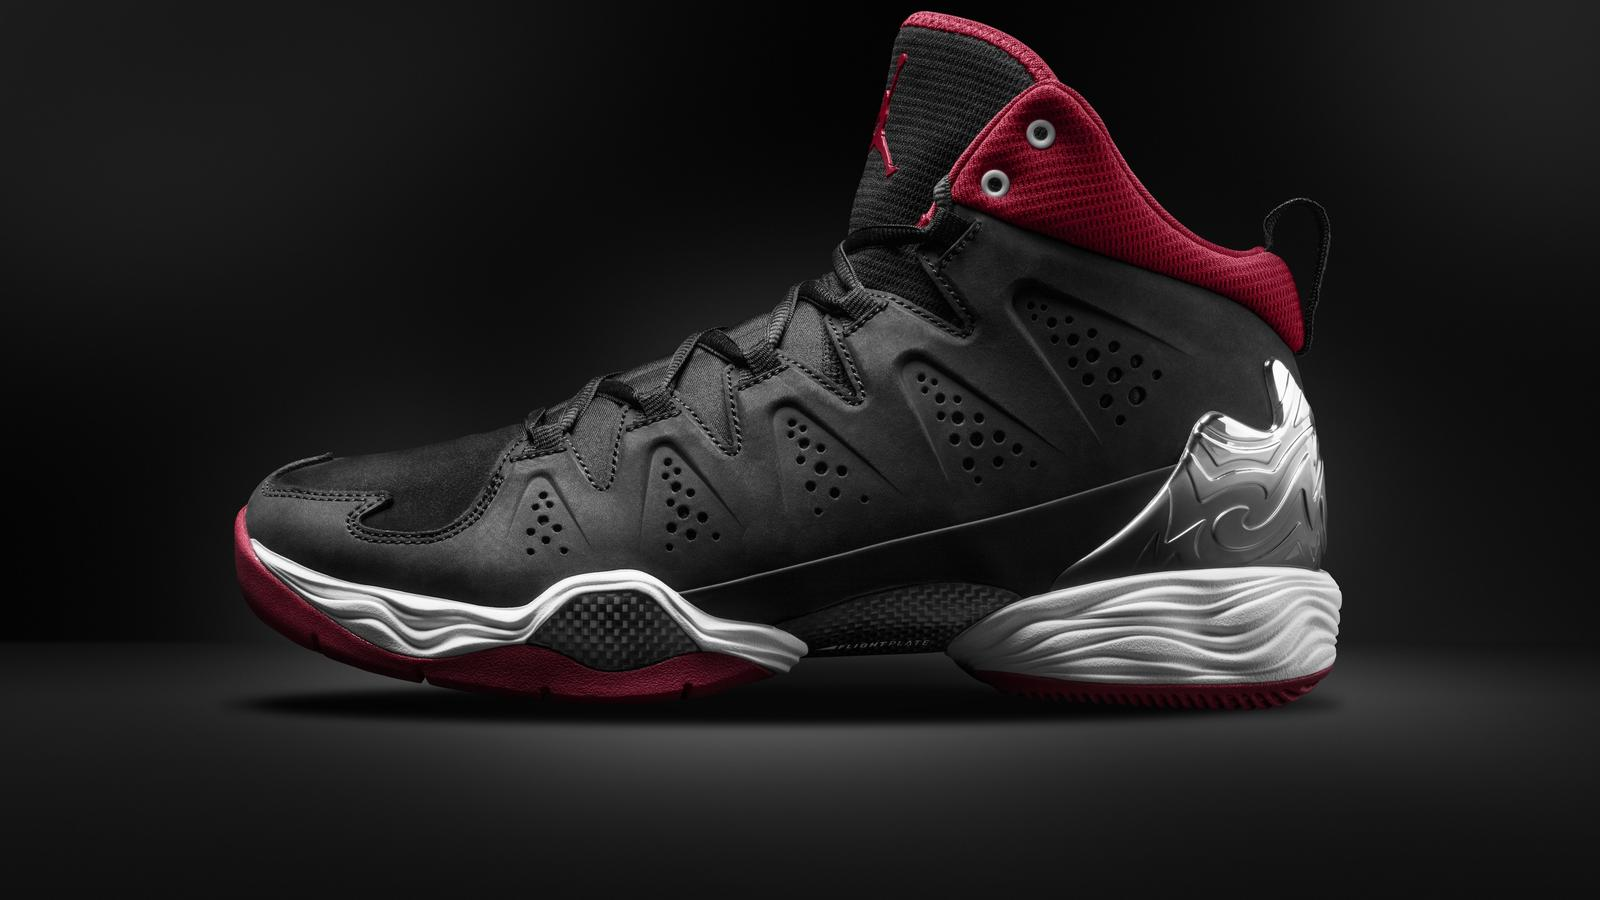 MELO M10_BLACK/WHITE-ANTHRACITE-GYM RED